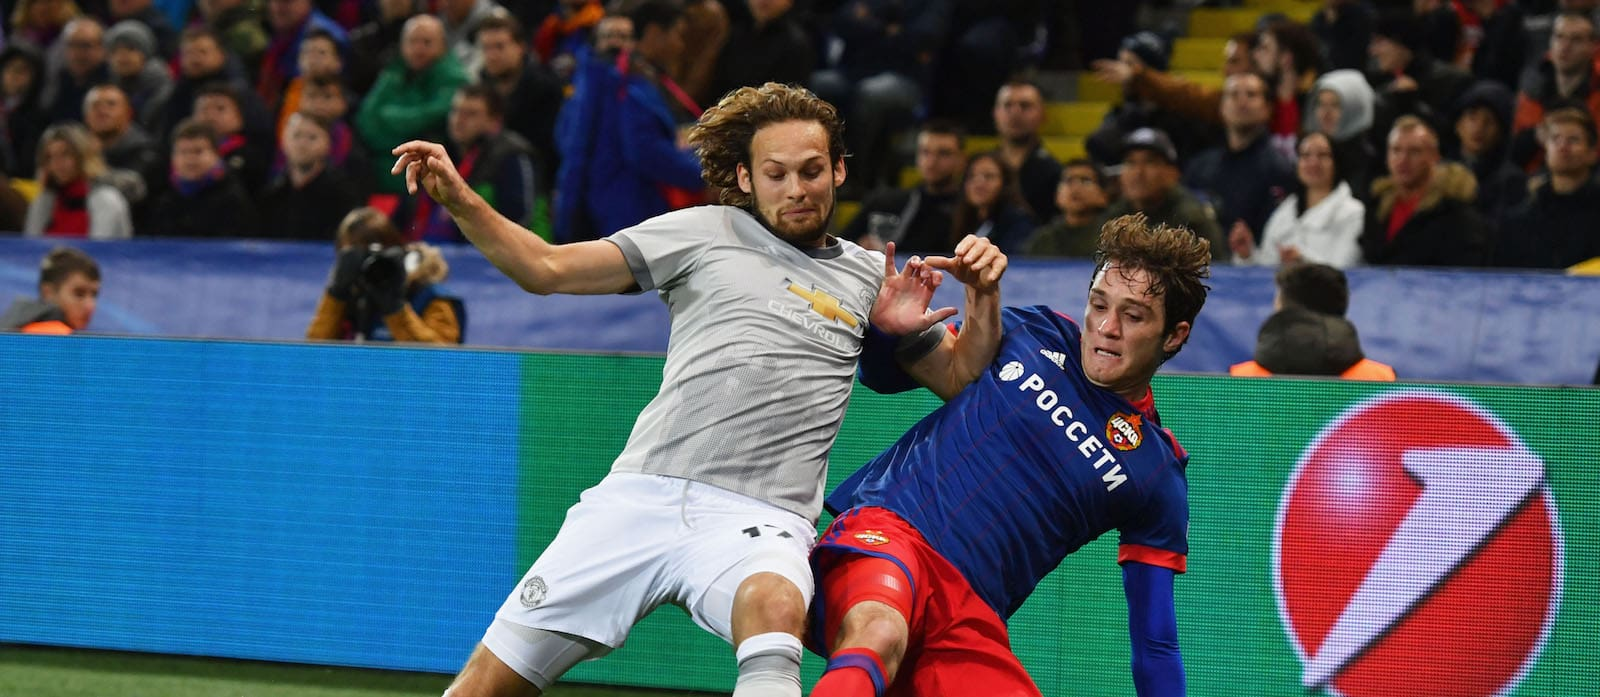 Daley Blind close to completing transfer to Ajax: report